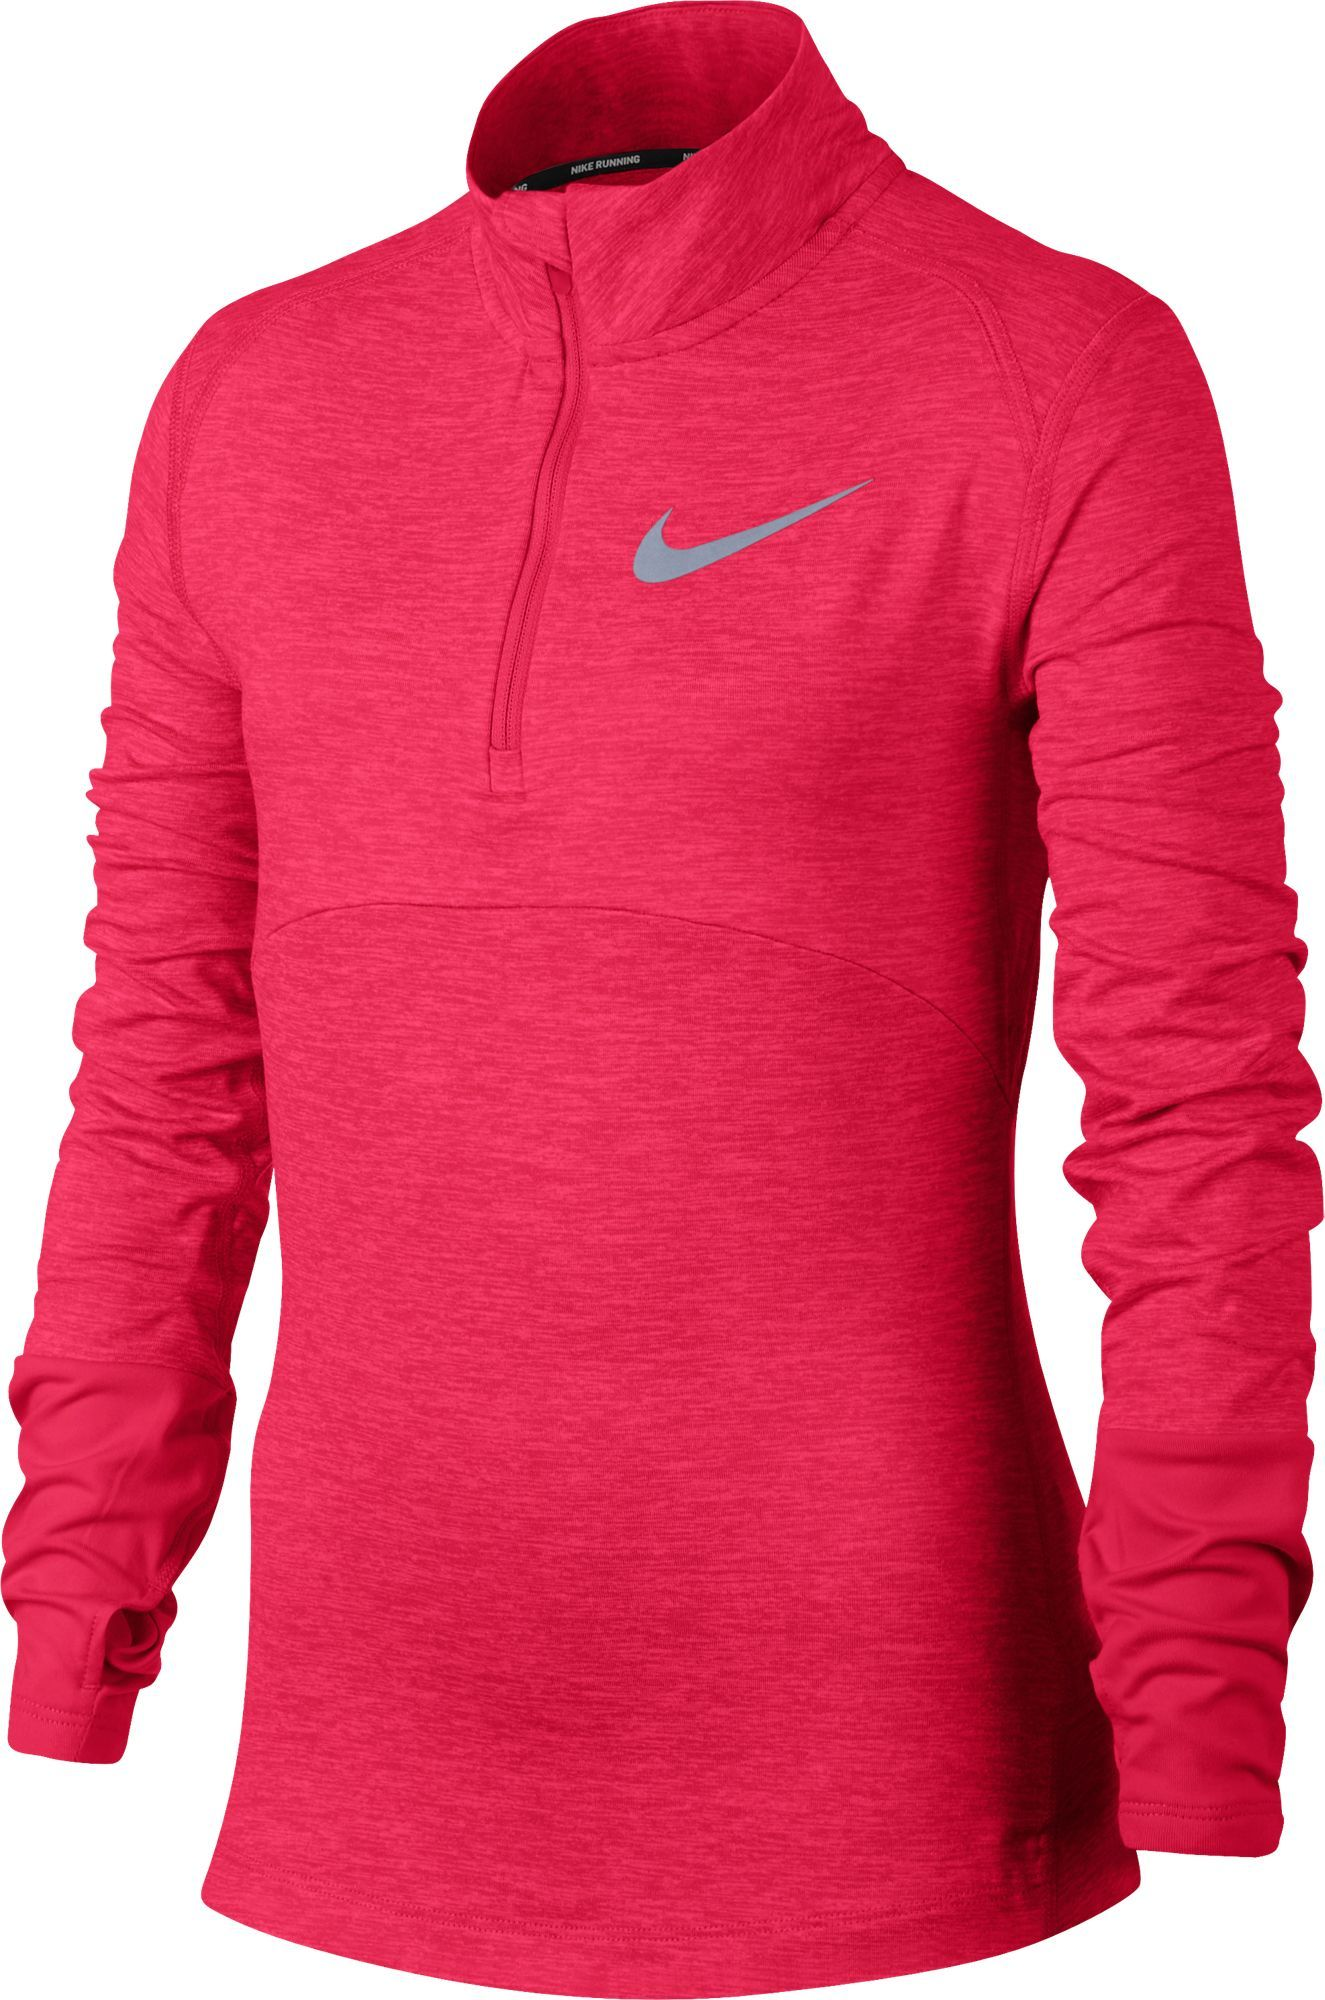 a21deb85 Nike Girls' Dry Element Running Top (Racer Pink/Reflective Silver Heather,  Size Small) - Girl's Apparel, Girl's Athletic Tops at Academy Sports